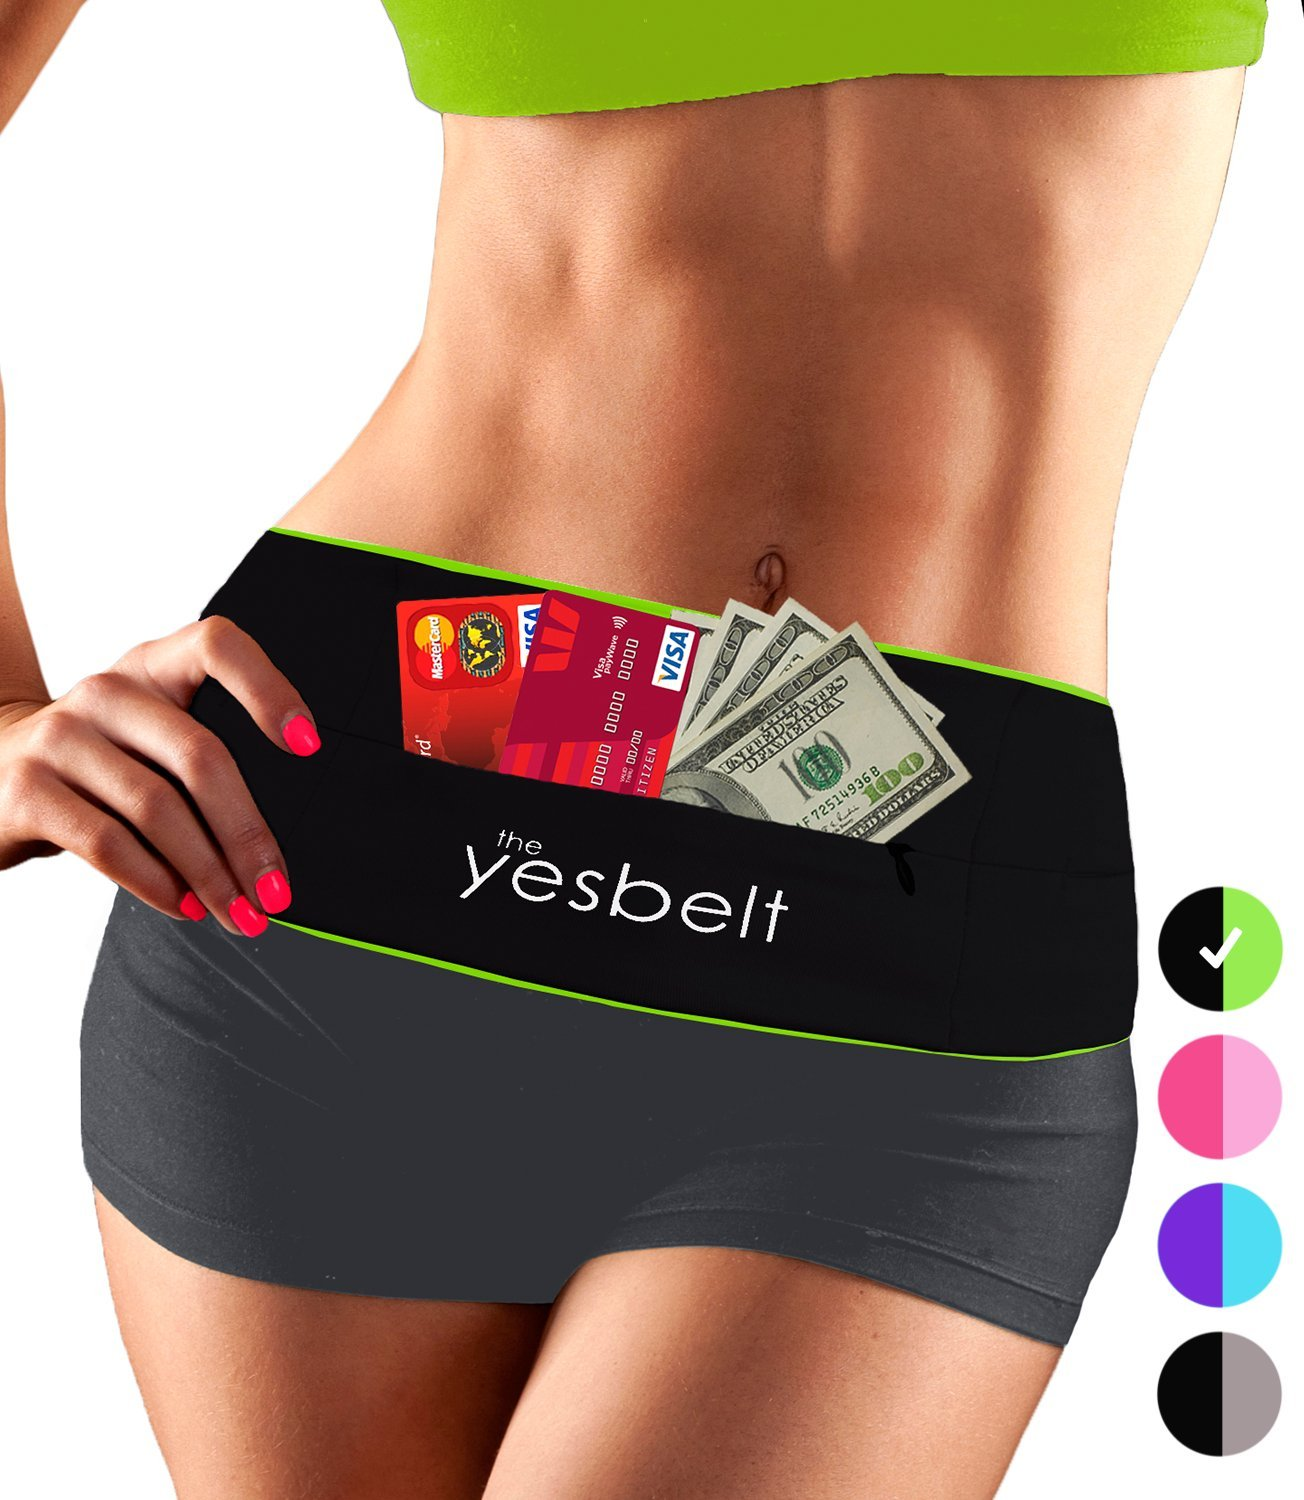 YesBelt #1 Reversible Running Belt and Waist Pack w Zipper - Better Than Cell Phone Sports Armband - iPhone 6 Plus - Best Travel Money Belt - Stylish Fitness Zip 'n Flip Band for Workout - Lime L